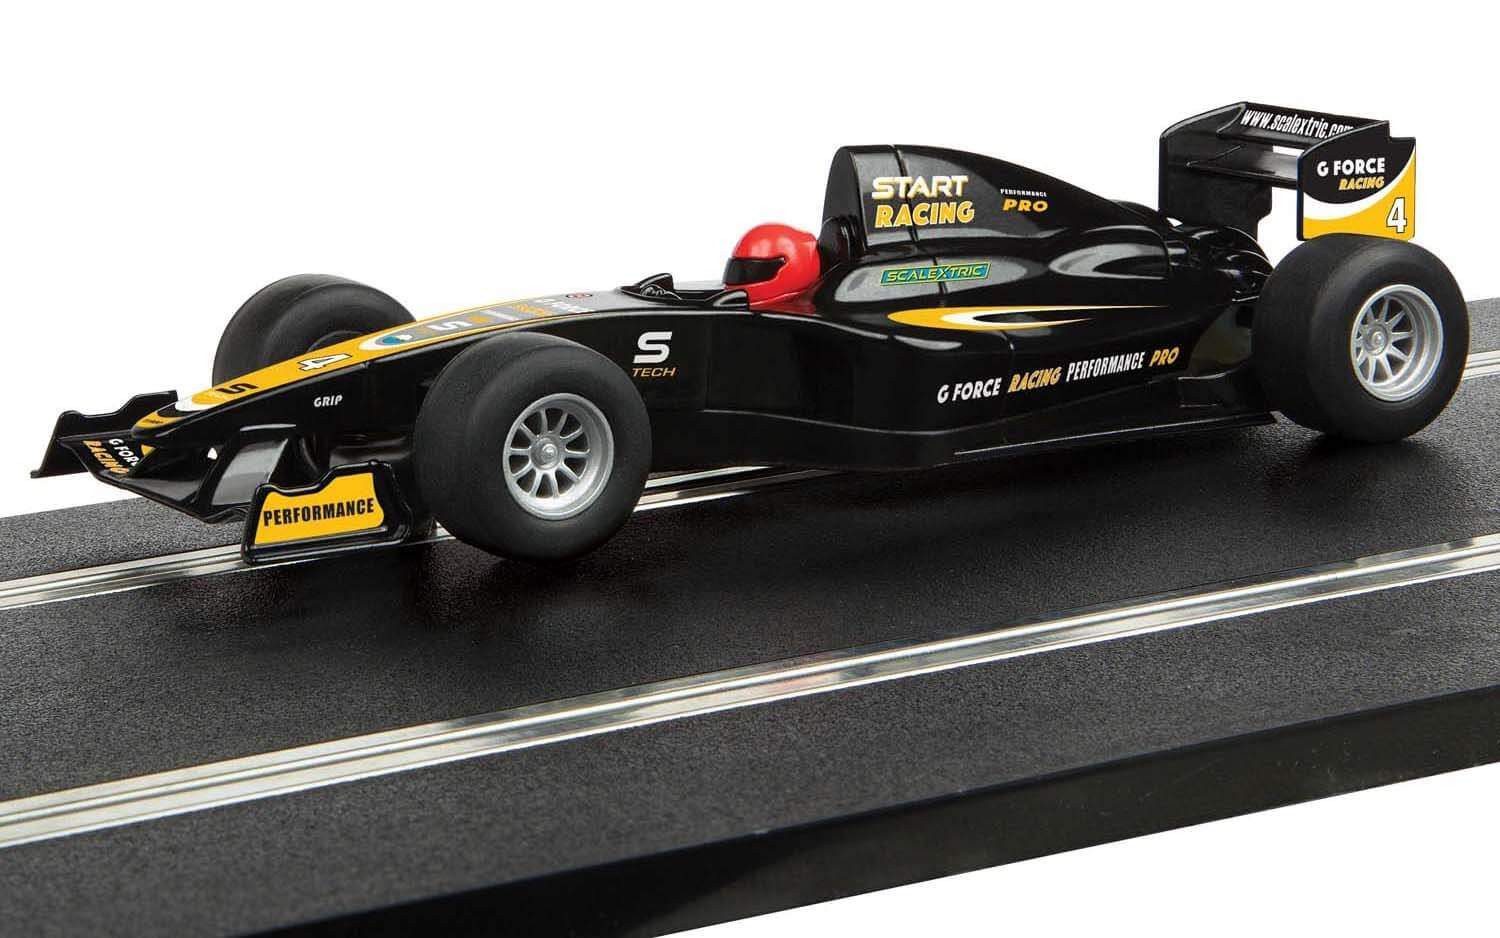 C4113 Scalextric Start F1 Racing Car - 'G Force racing'